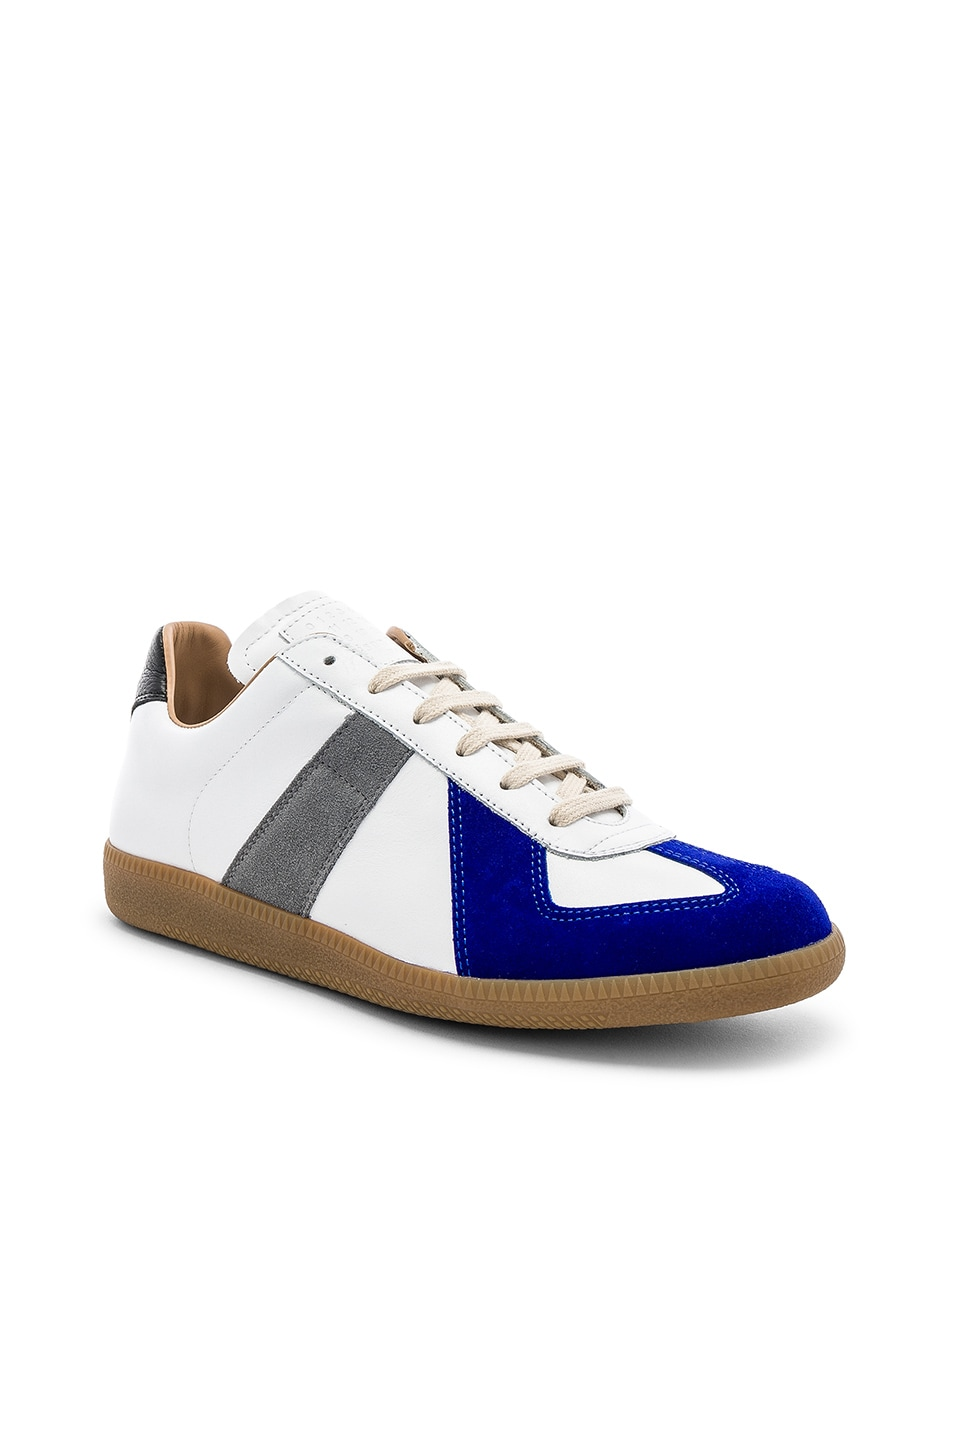 Image 1 of Maison Margiela Leather Replica Low Tops in White & Blue